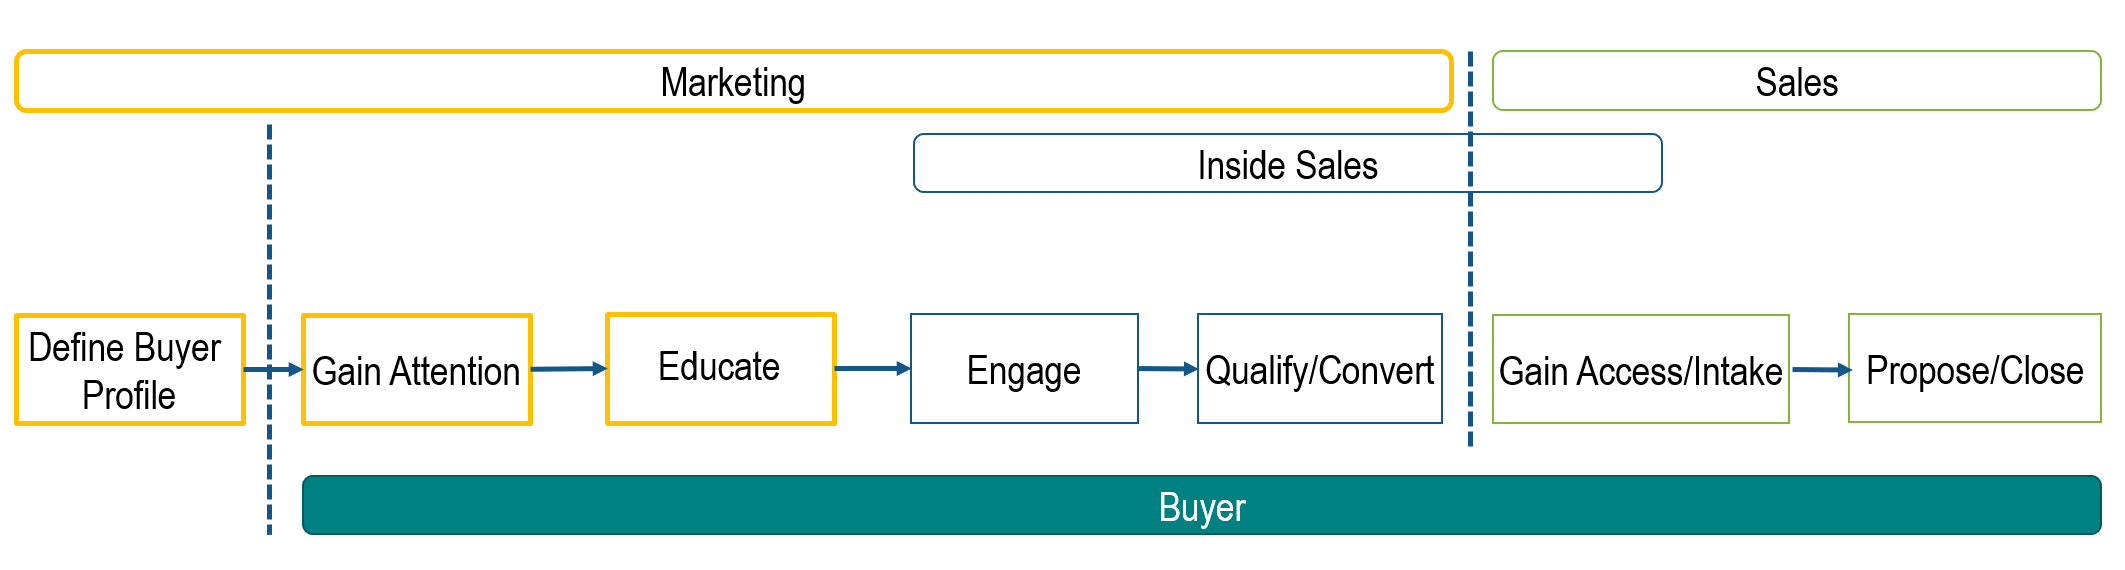 Buyer Lifecycle Ownership with profile activity.PNG